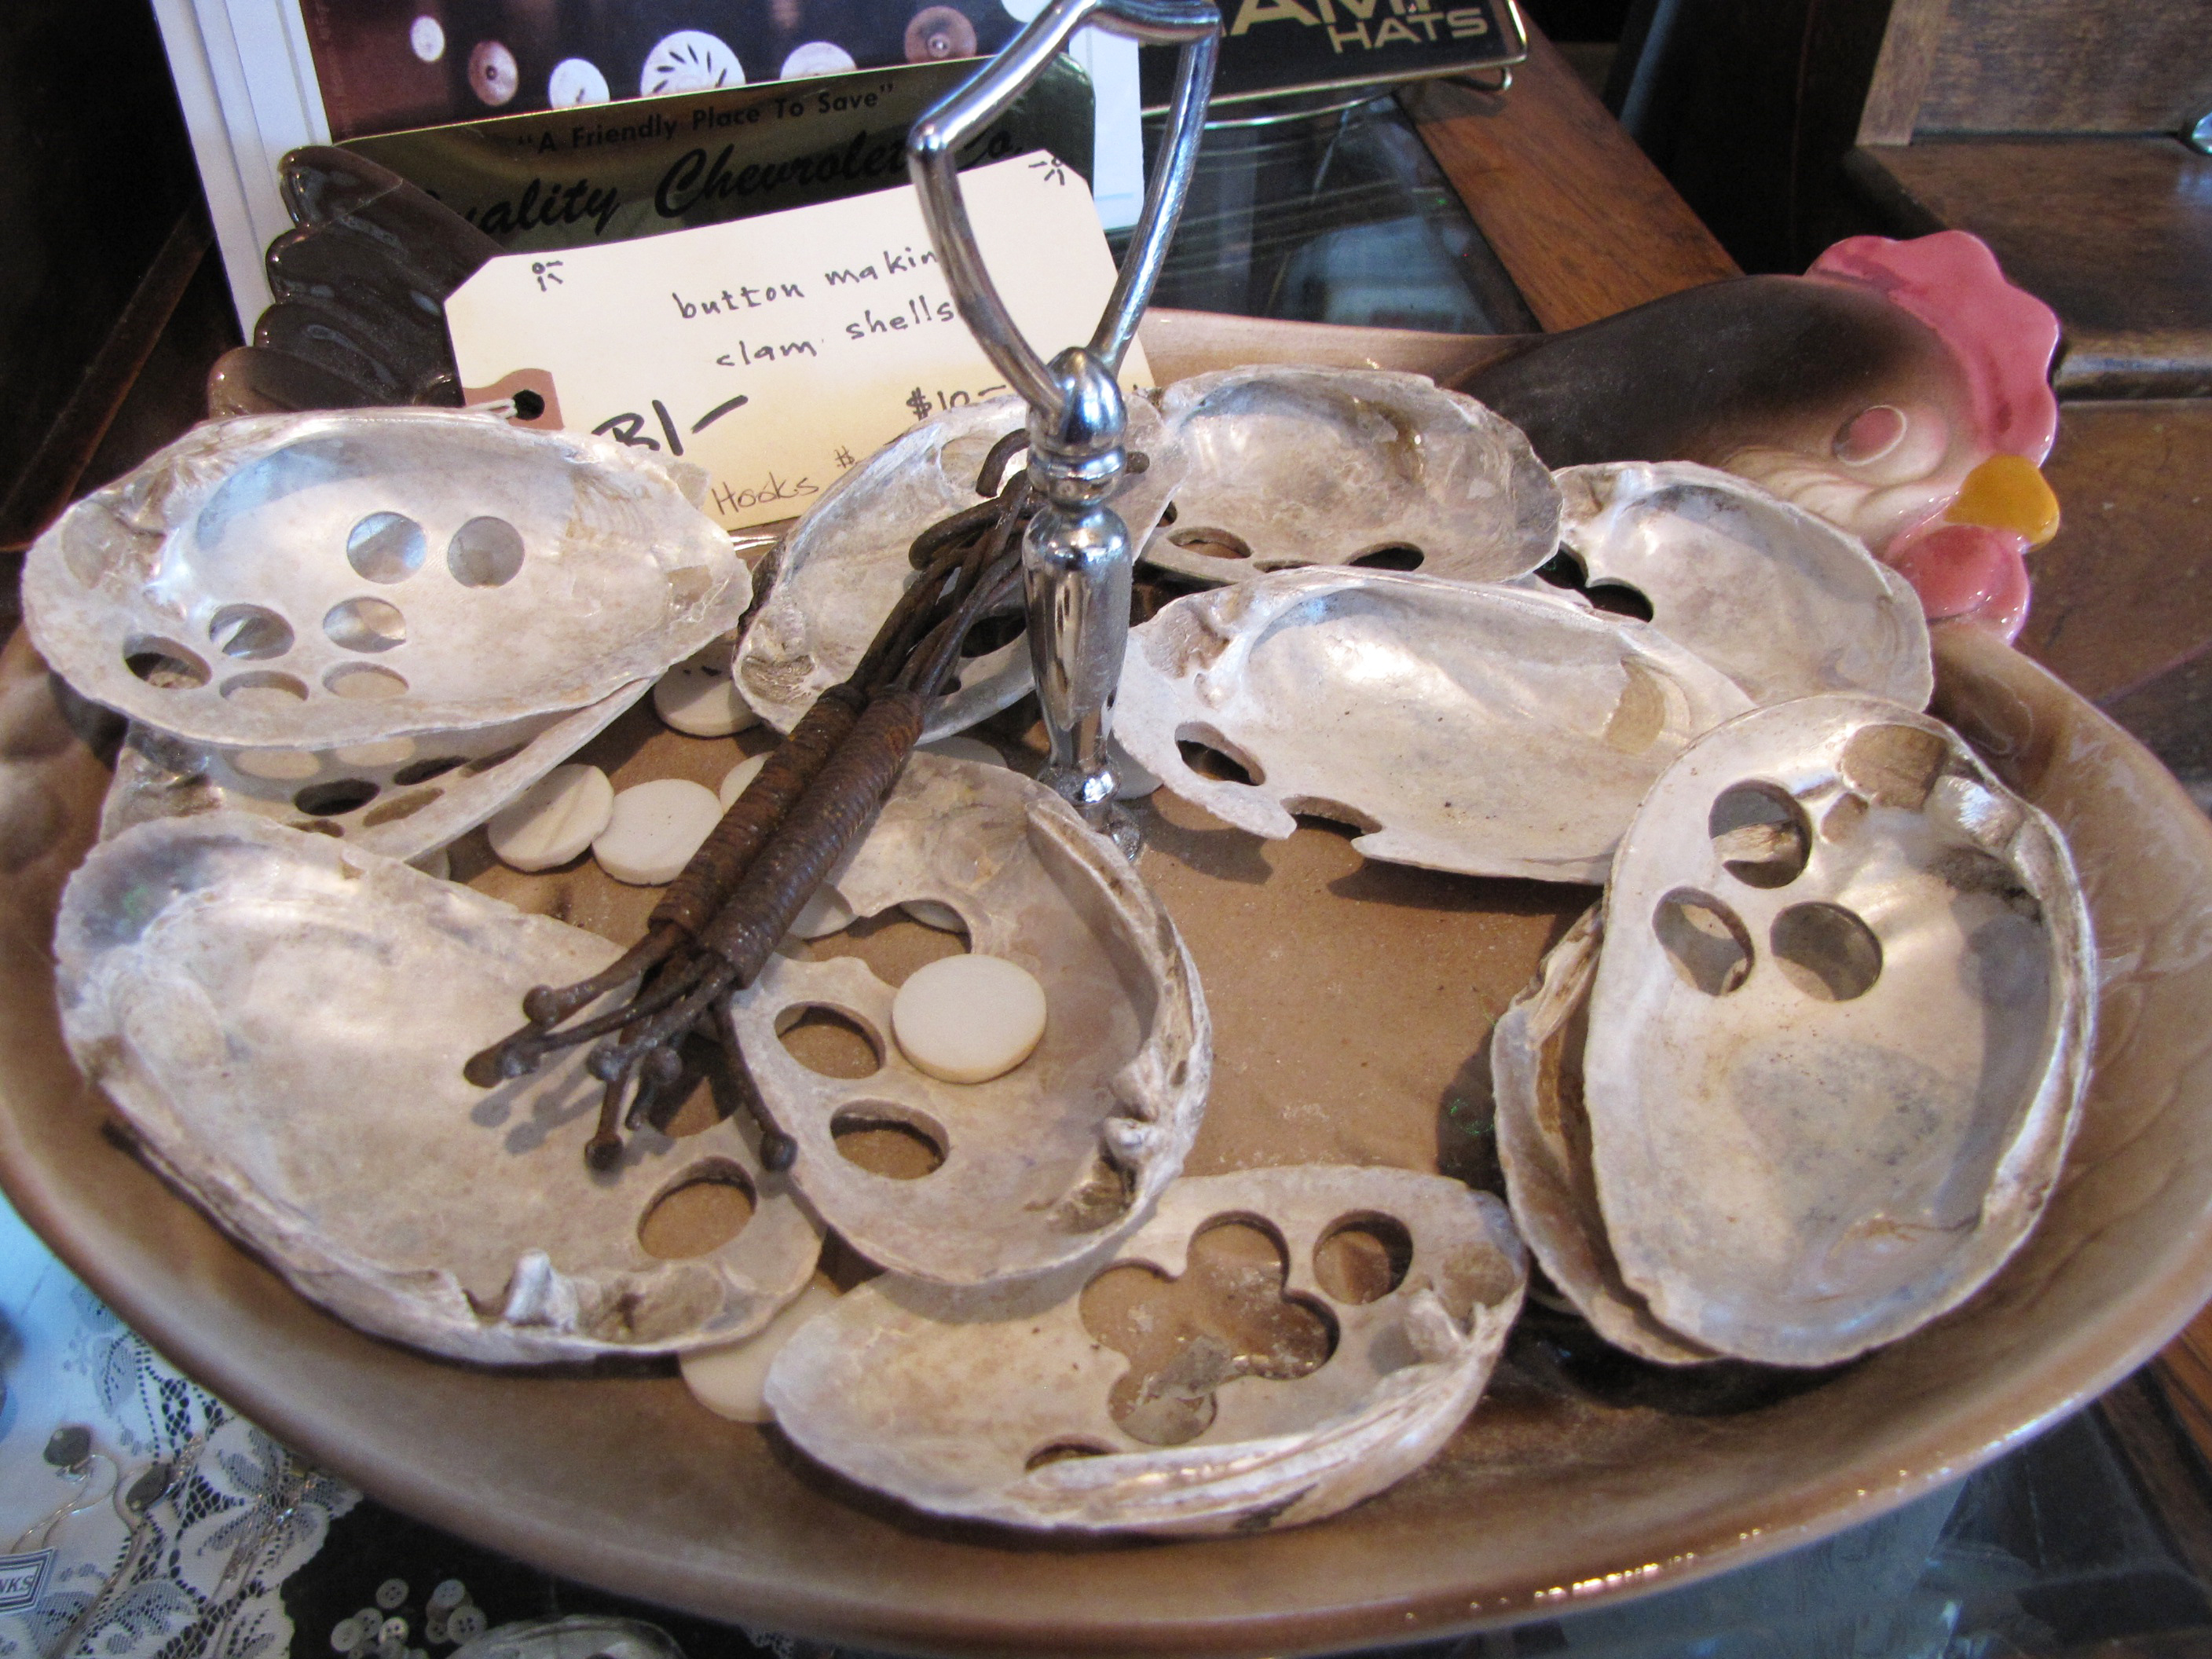 Pearly clams were once cut into buttons.